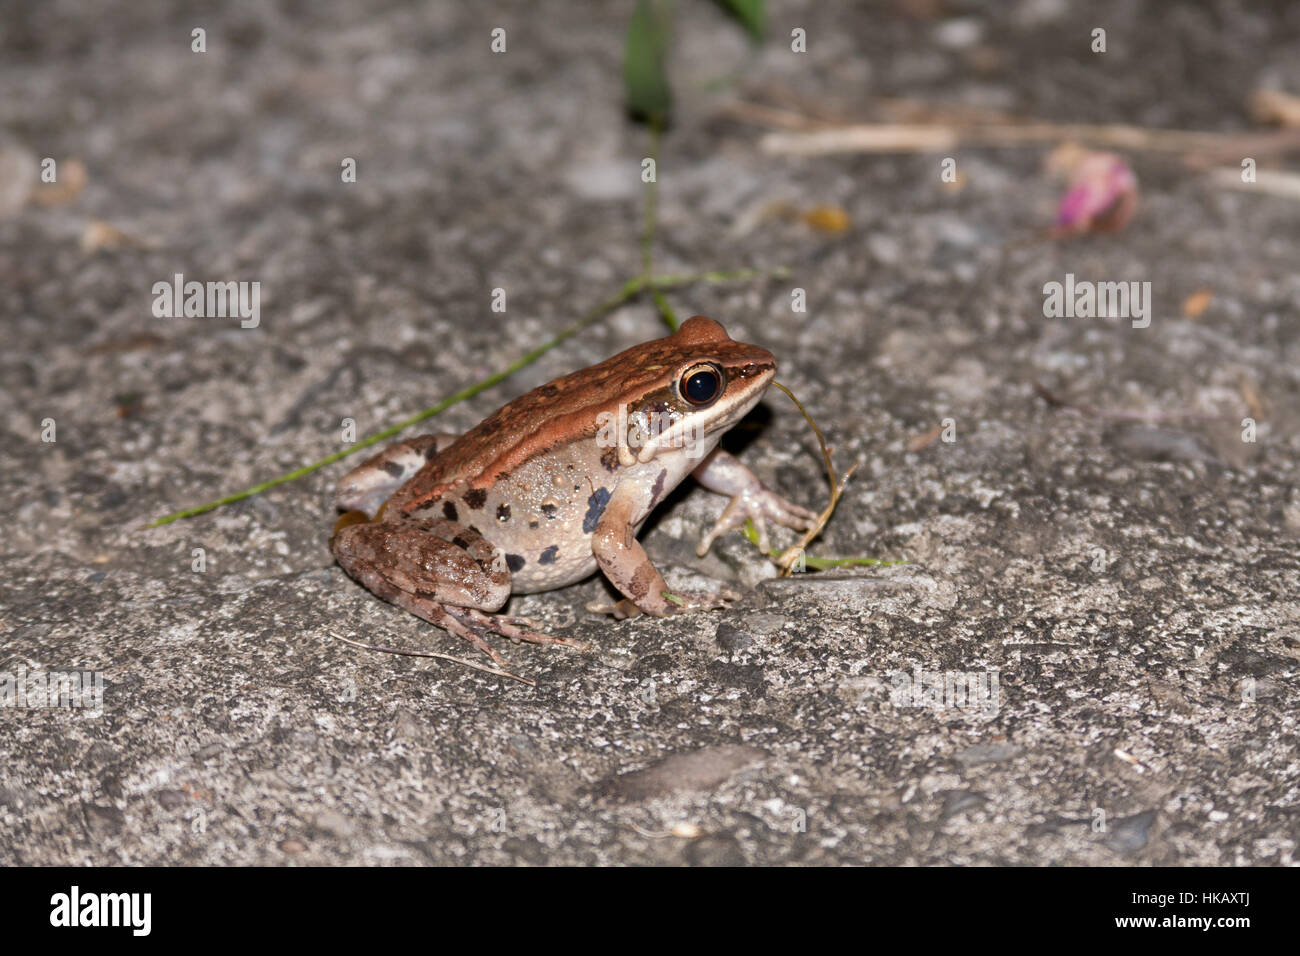 Brown wood frog (Hylarana latouchii) in Heping District, Taichung City, Taiwan - Stock Image